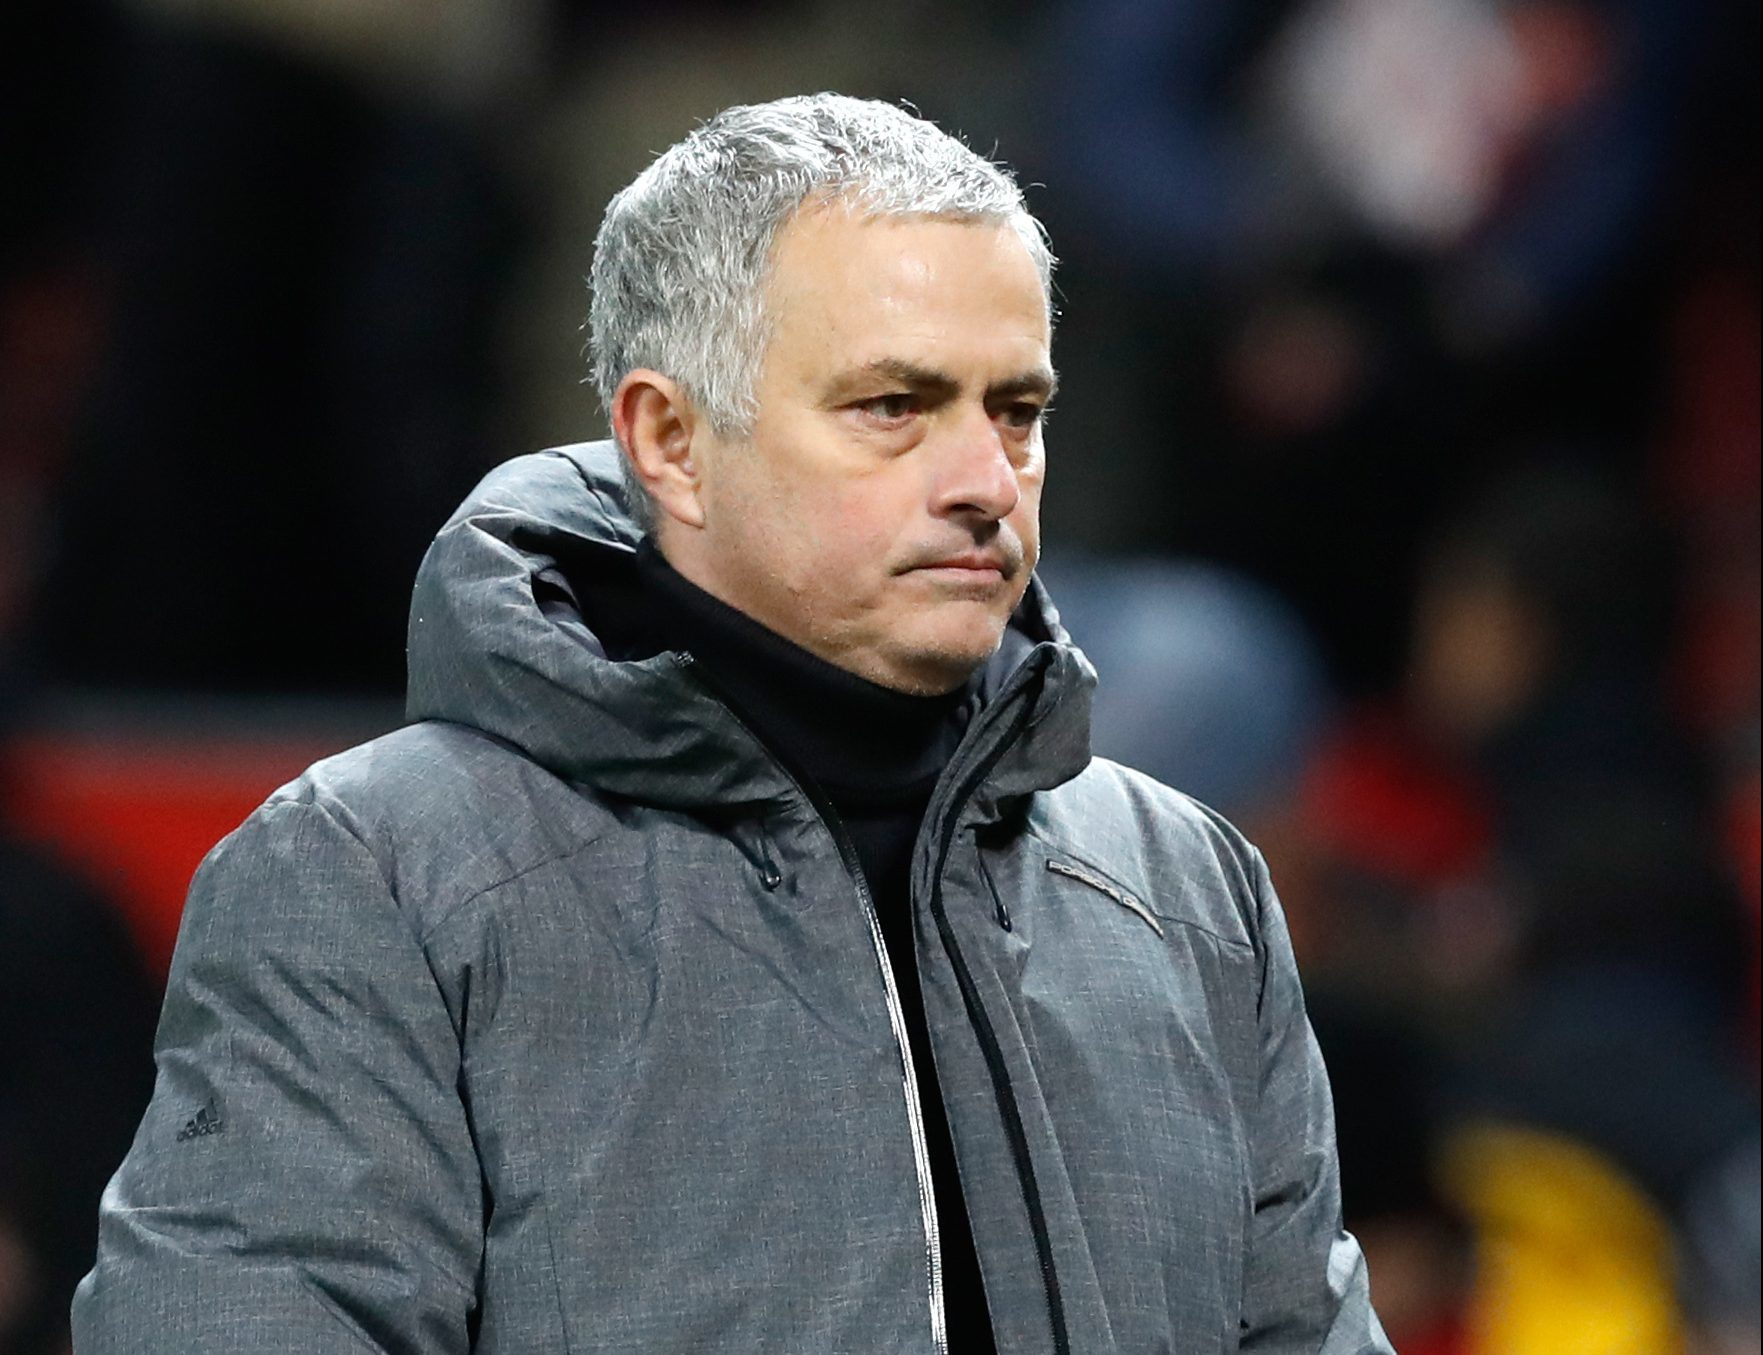 Manchester United manager Jose Mourinho. (Martin Rickett/PA Wire)